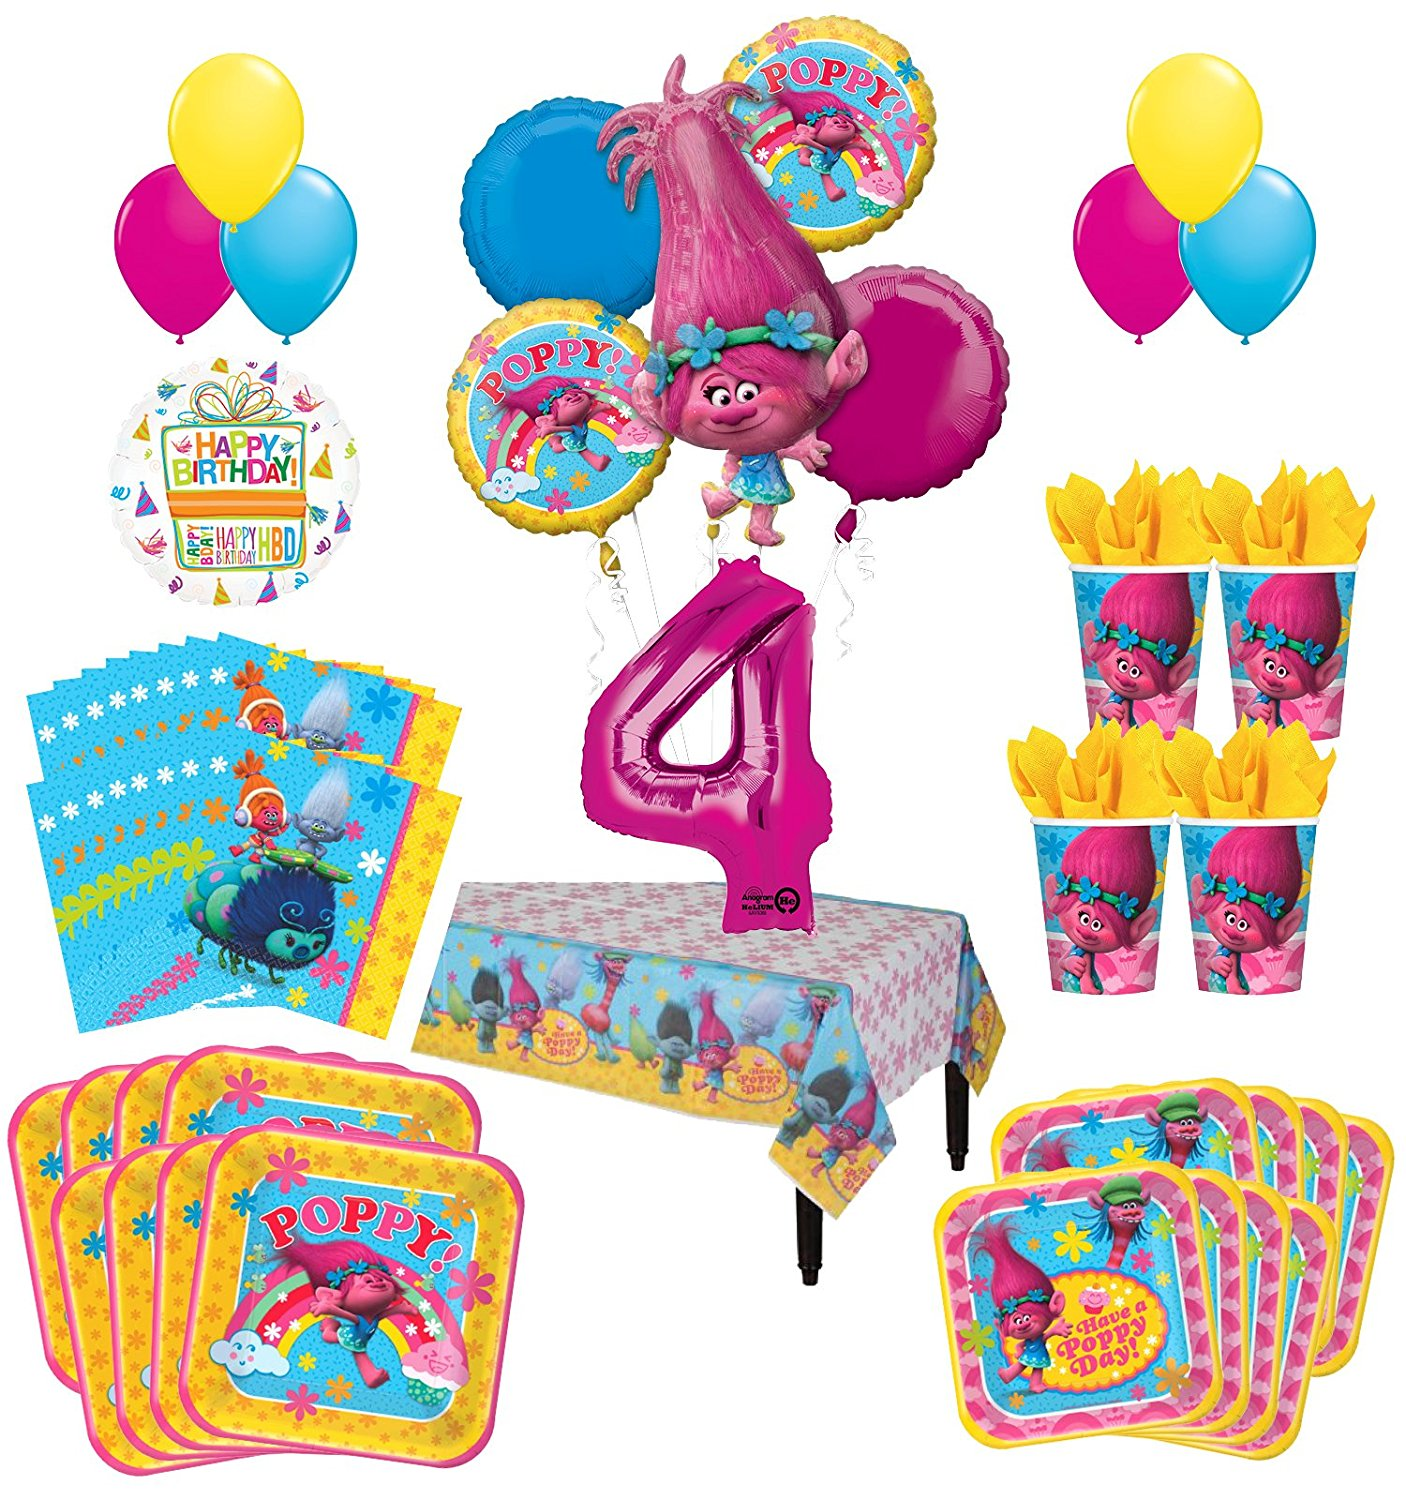 Party Packs Adventure Time Birthday Party Decorations Party Favors Adventure Time Party Supplies Ultimate Set Napkins And More Plates Toys Games